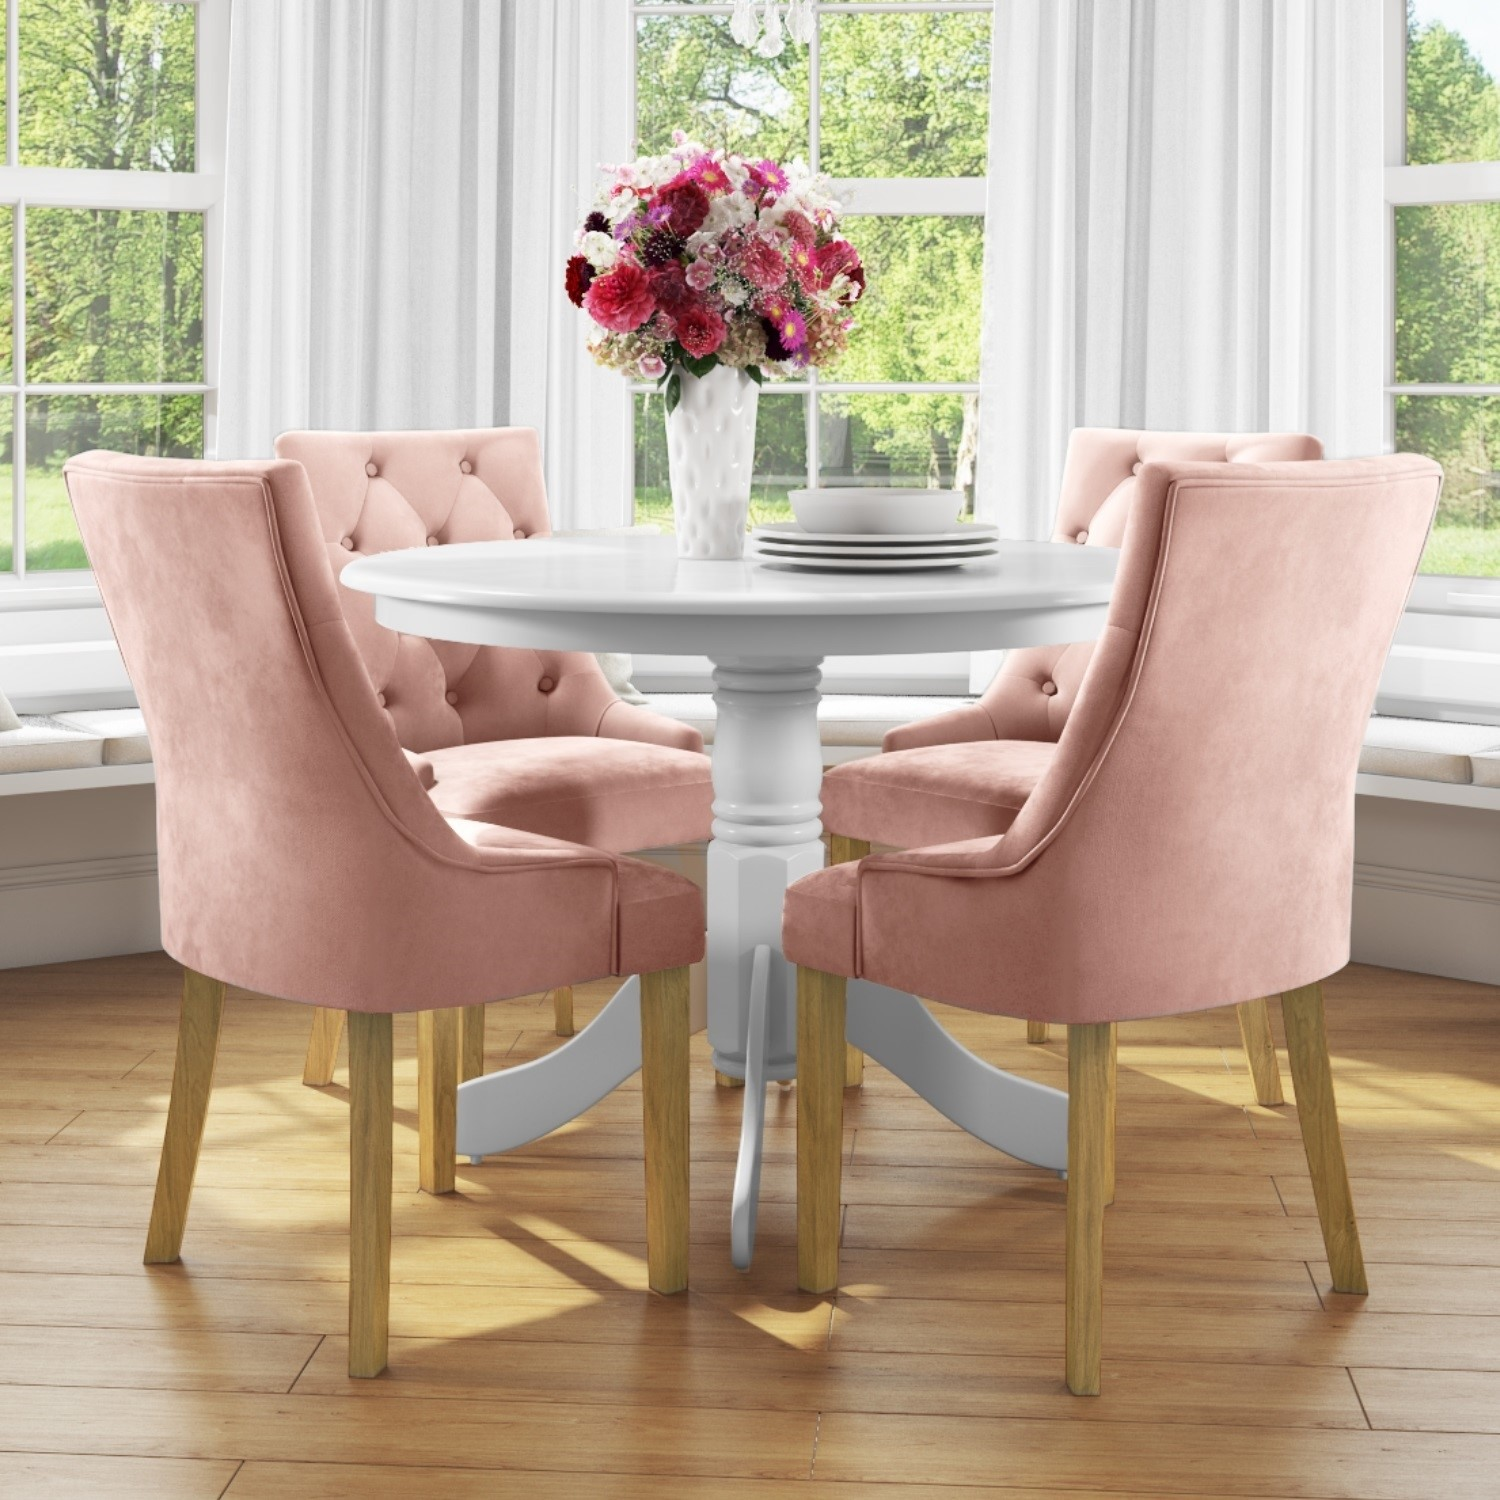 official photos 46aea 20ad4 Small Round Dining Table in White with 4 Velvet Chairs in Pink - Rhode  Island & Kaylee